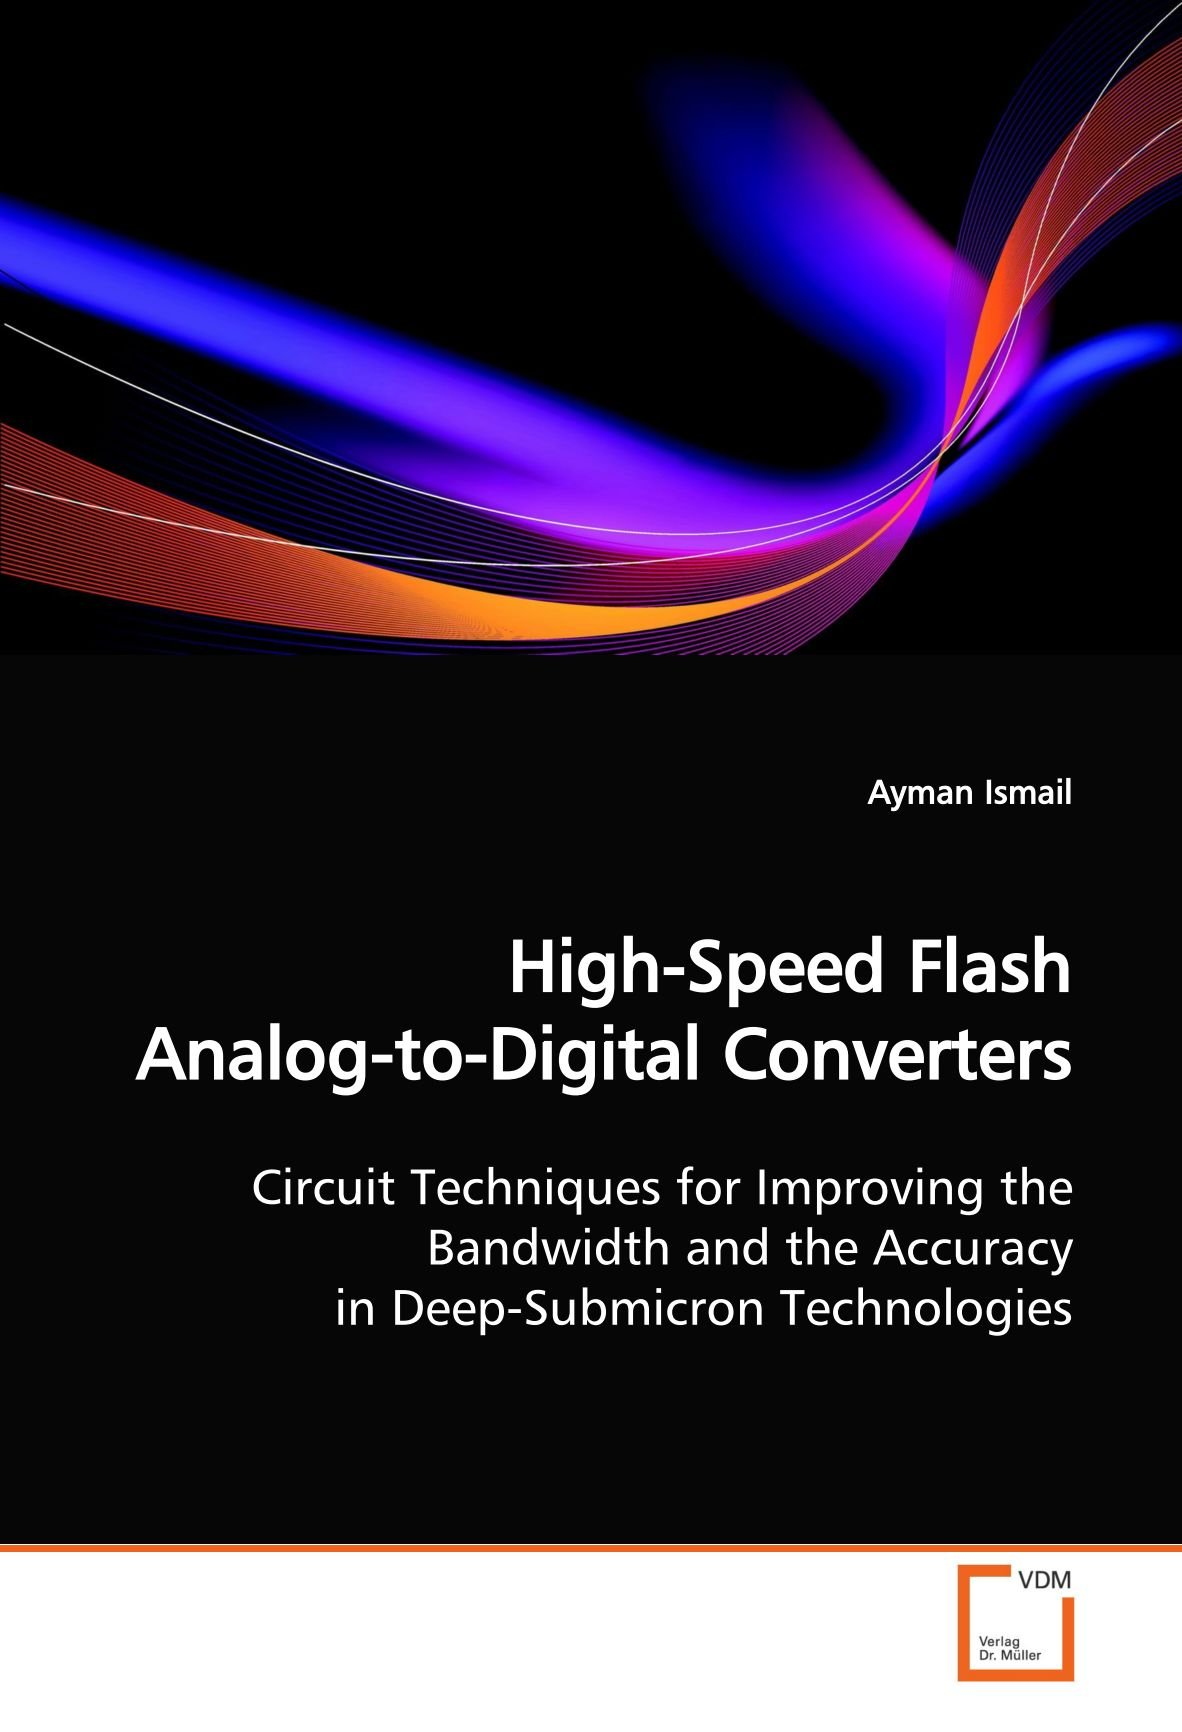 High Speed Flash Analog To Digital Converters Circuit Techniques Converter Design For Improving The Bandwidth And Accuracy In Deep Submicron Technologies Ayman Ismail